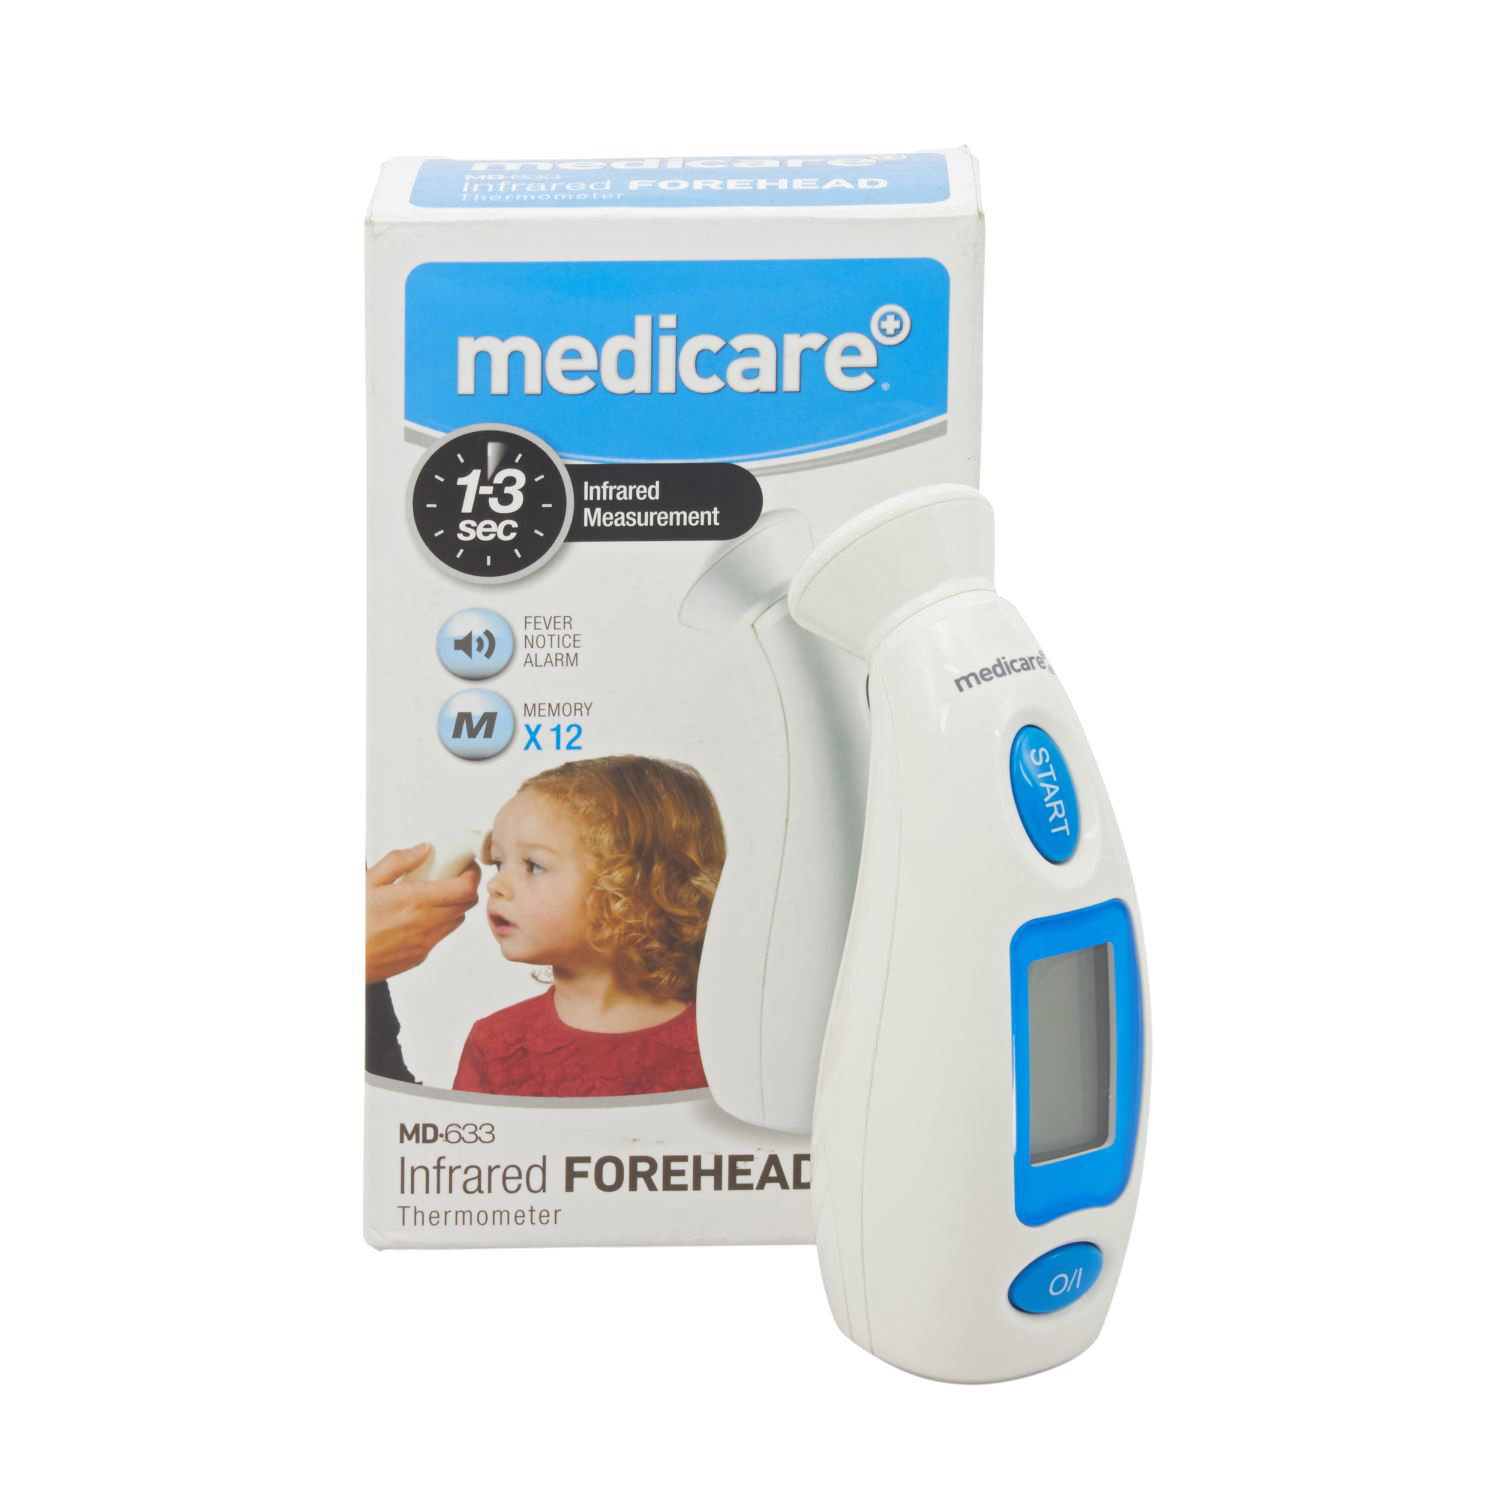 Medicare+ Infrared Forehead Thermometer MD633